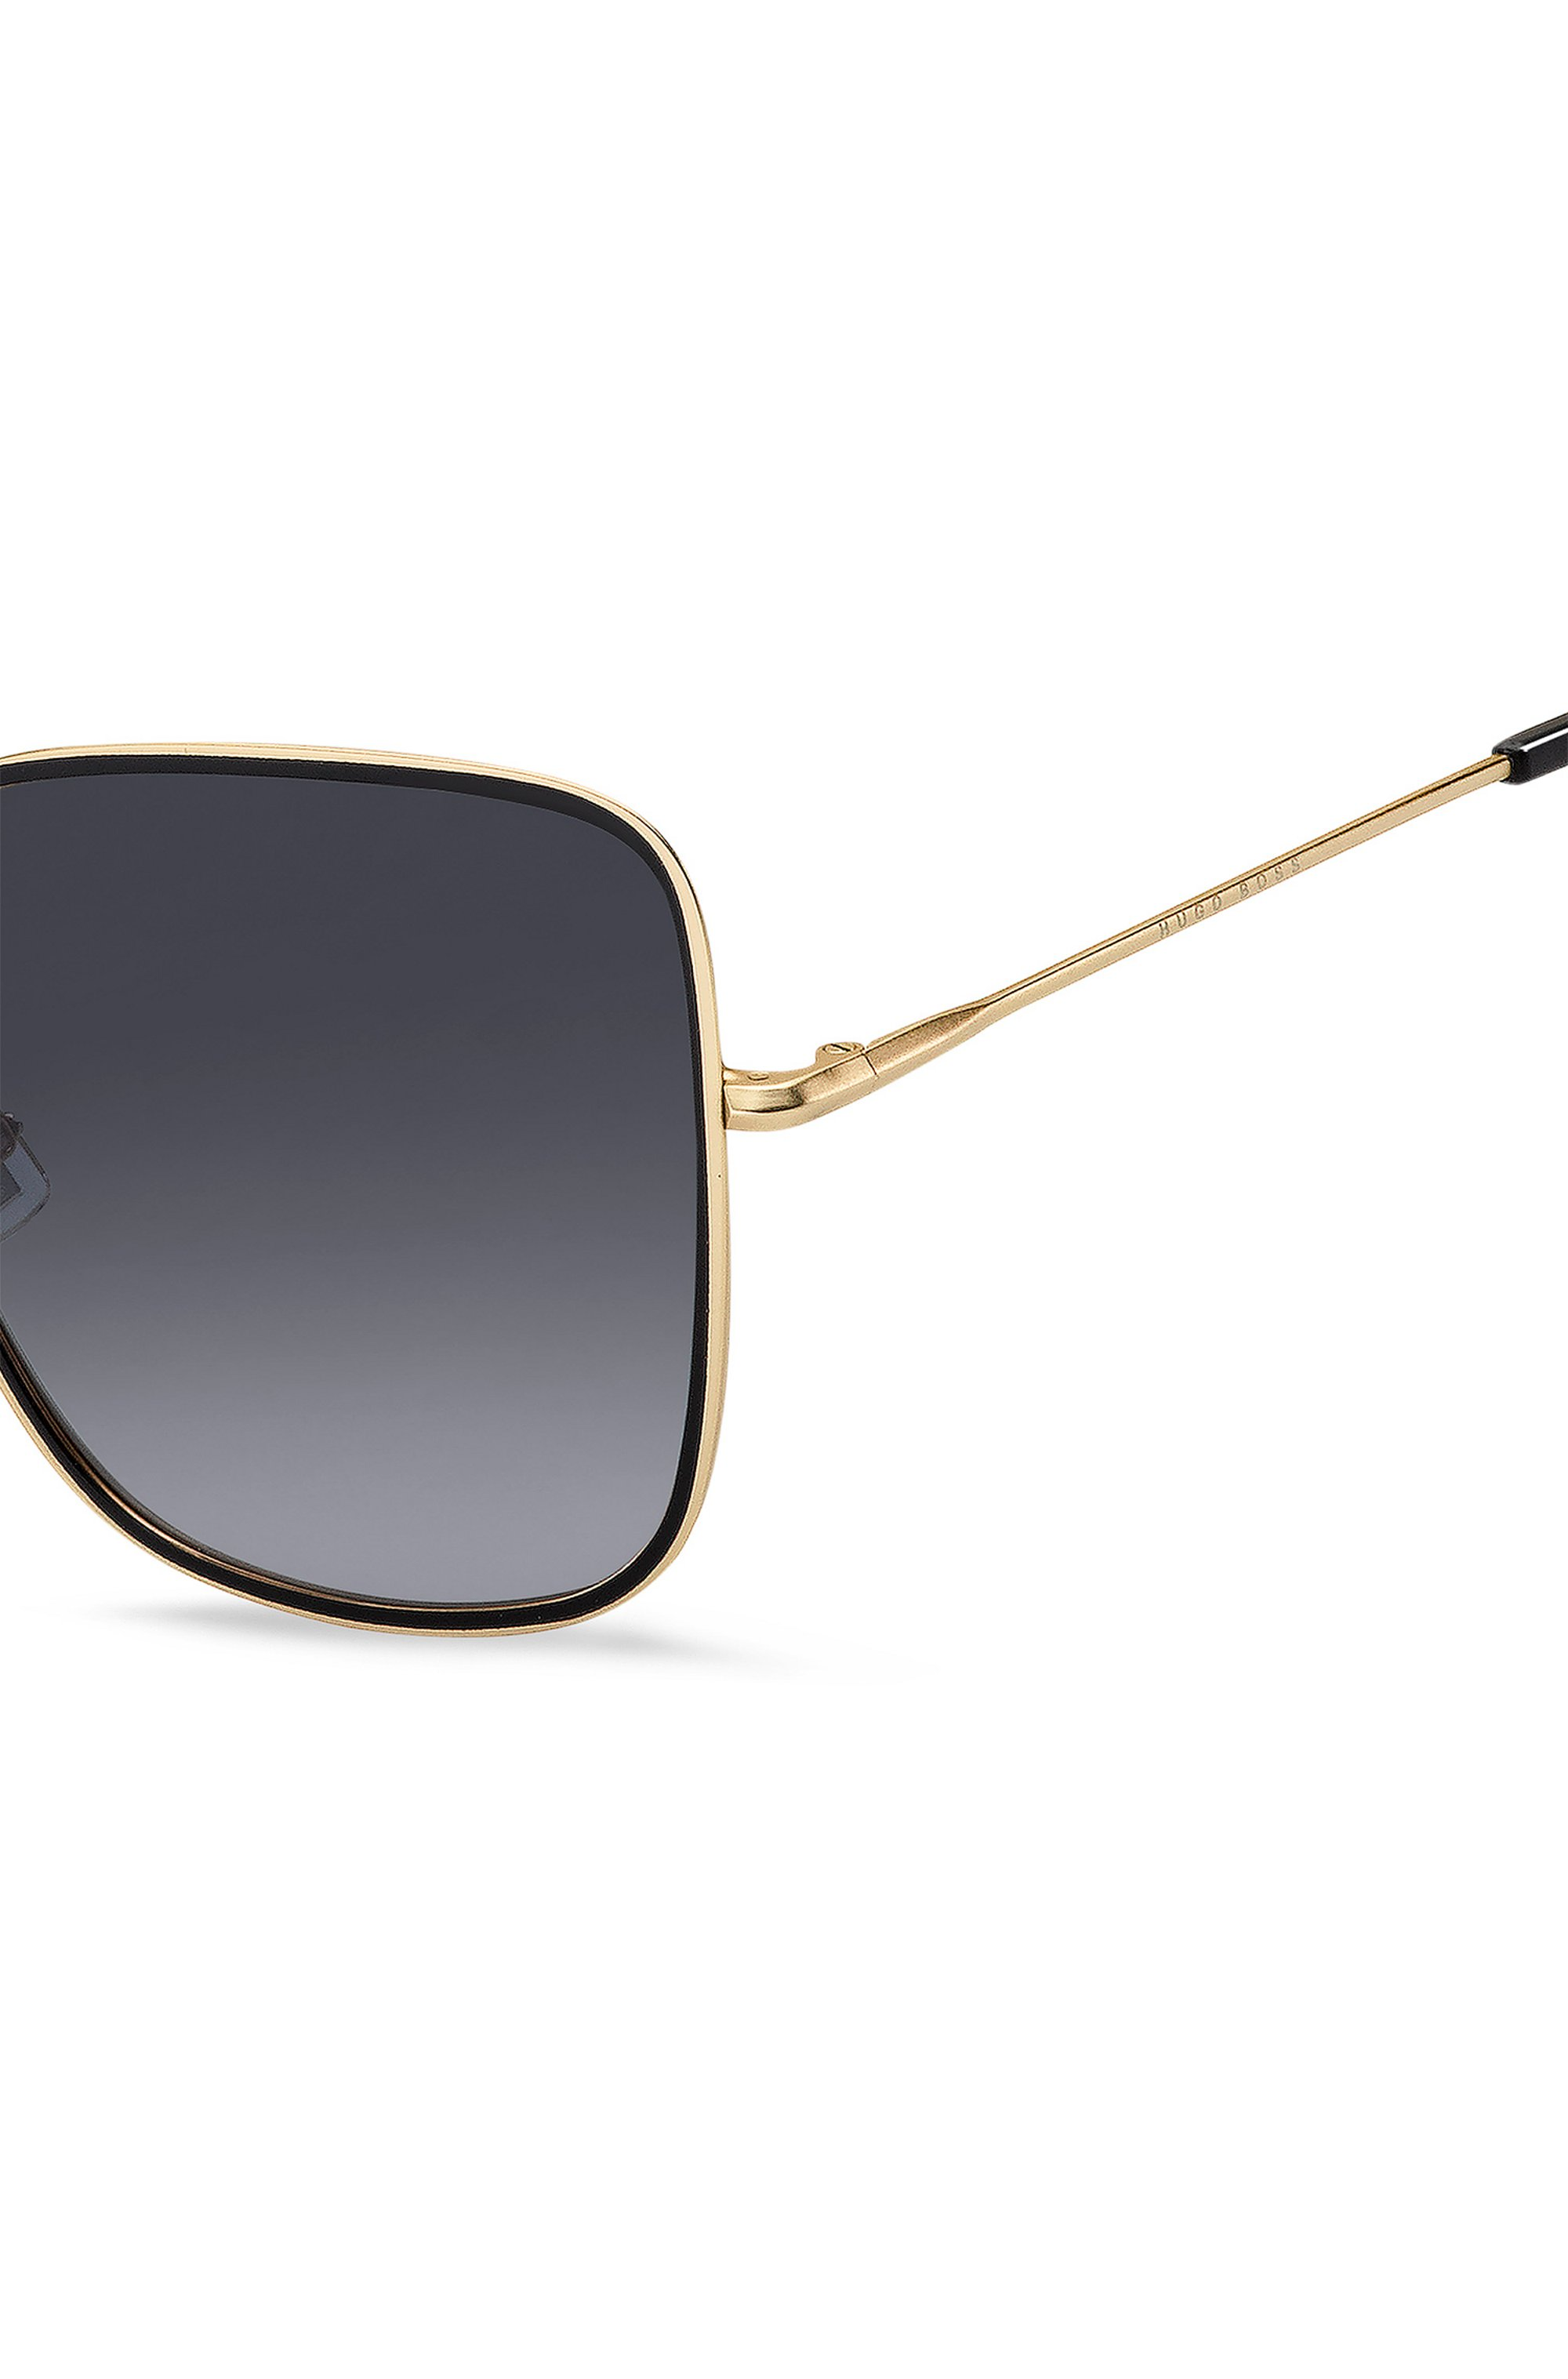 Grey-shaded sunglasses with black and gold finishes